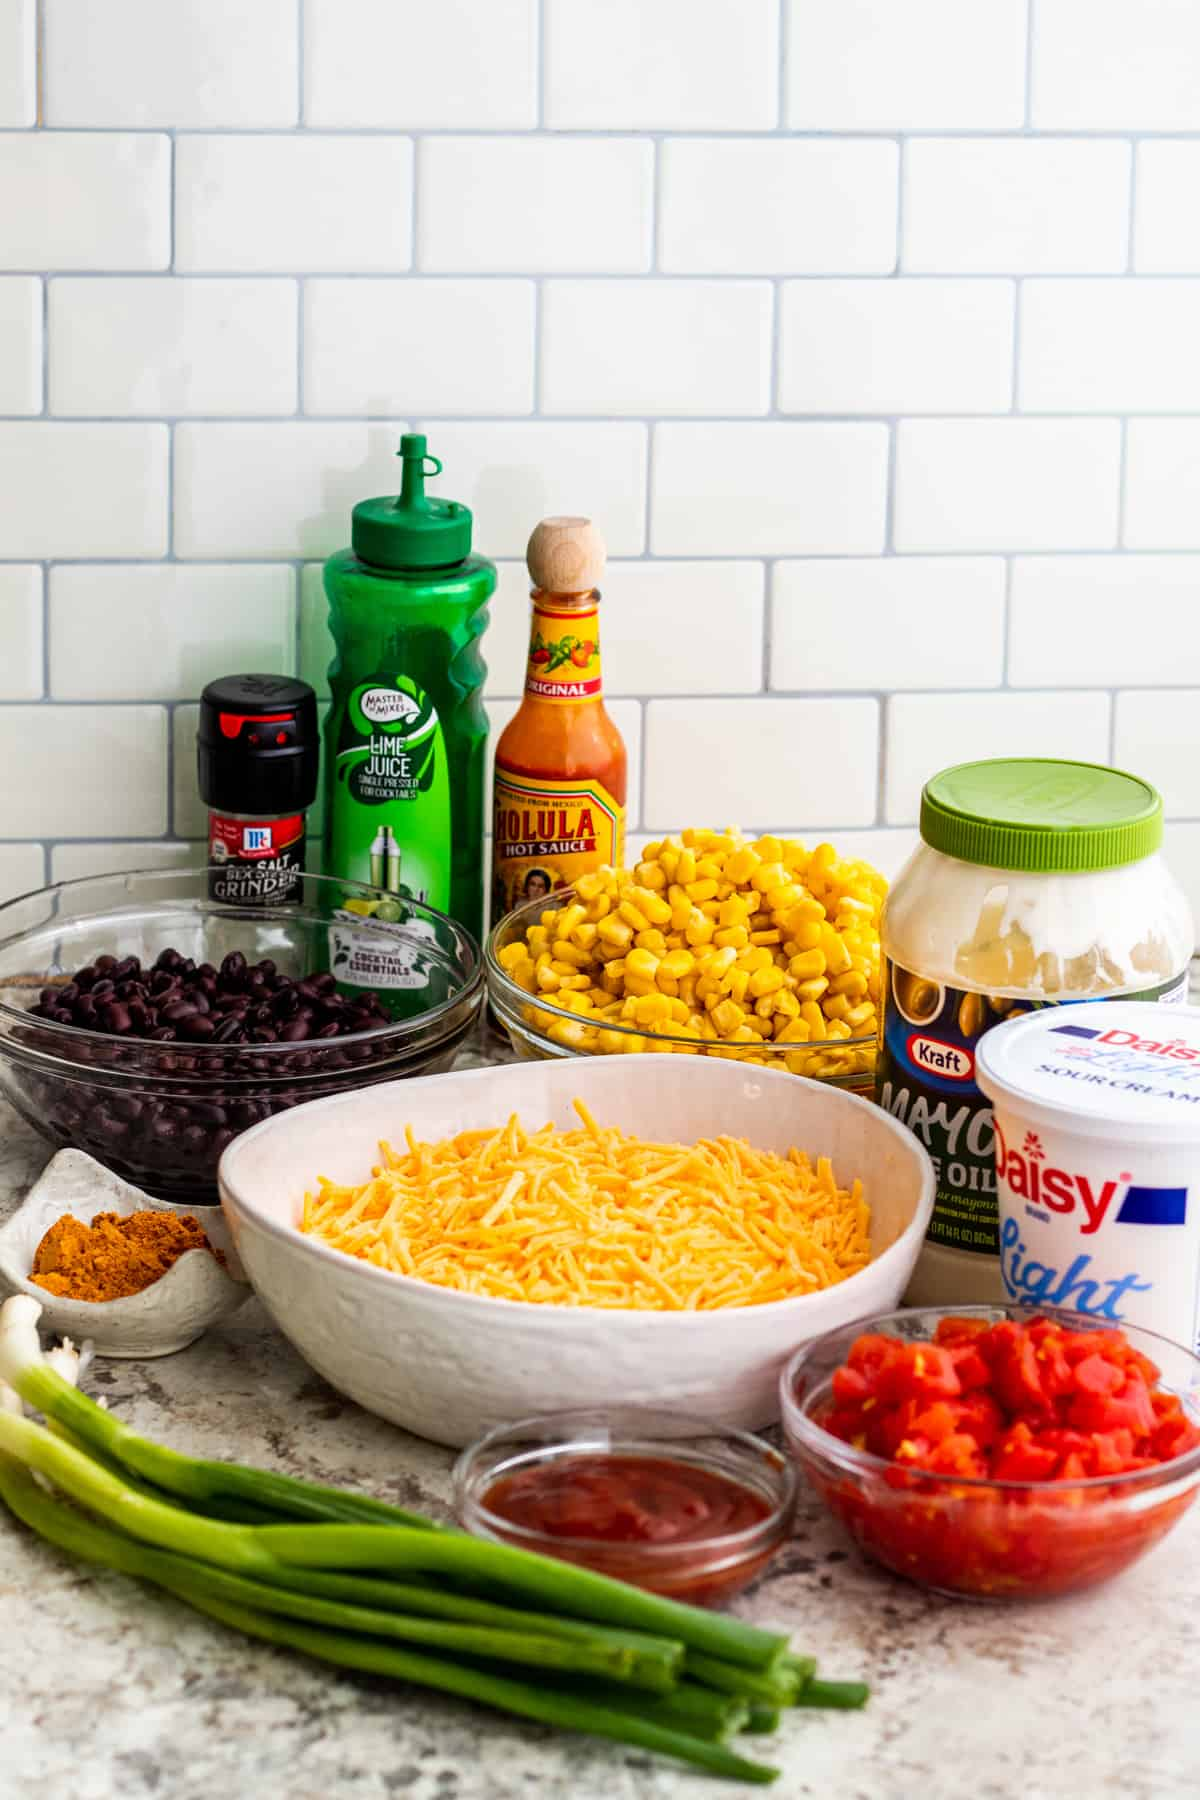 Ingredients for dip in bowls and containers laid out on white counter.